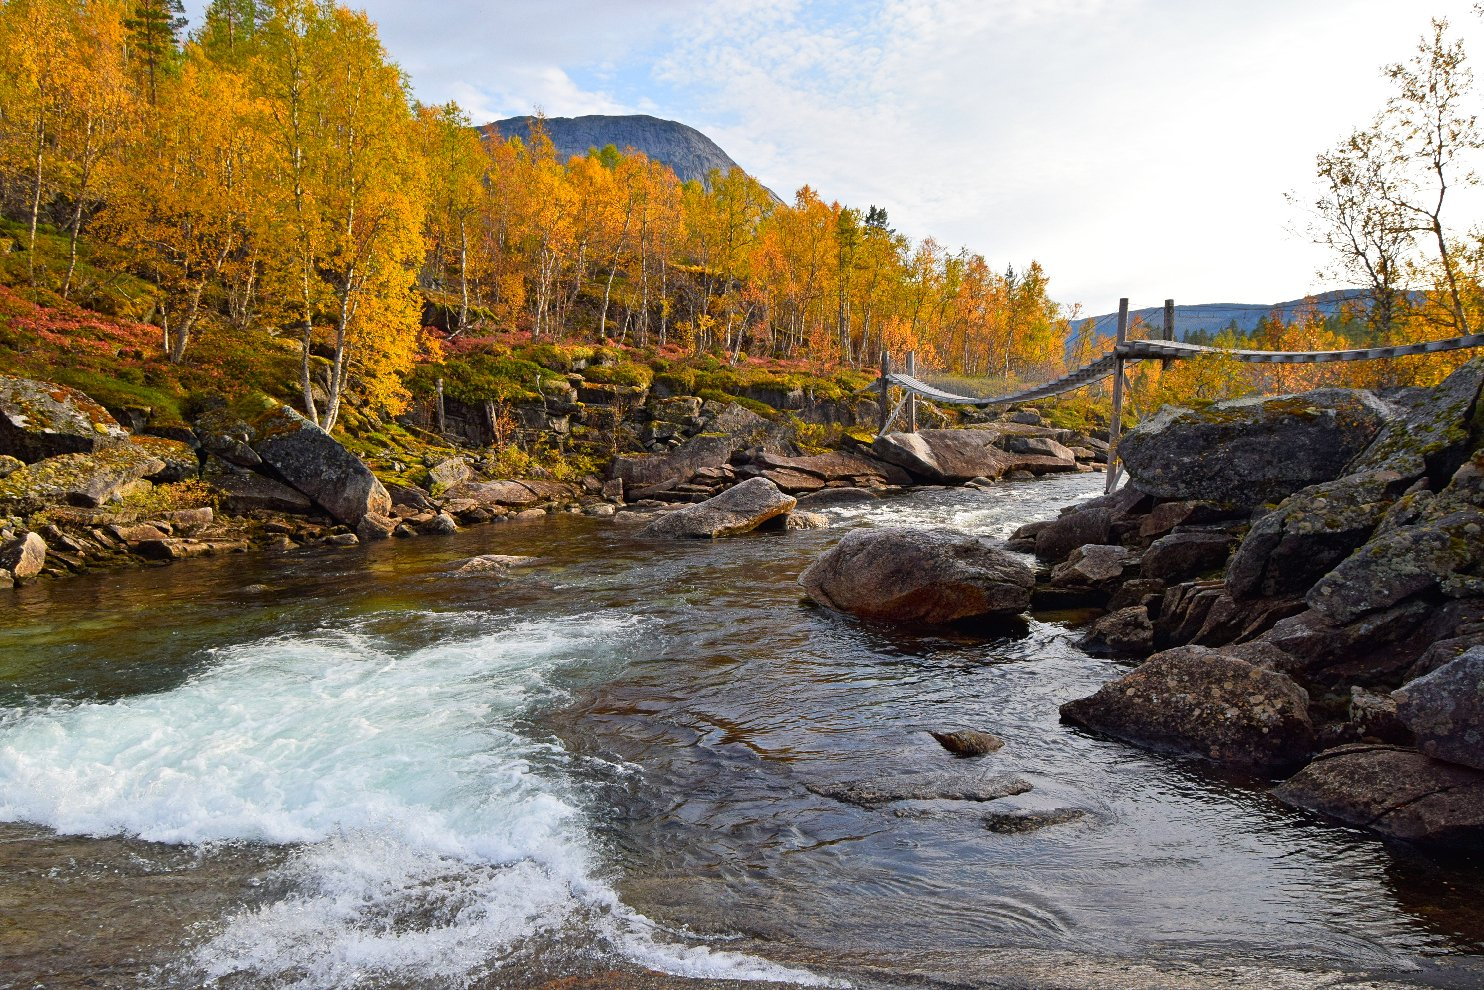 Gjerdalen river in Norway during autumn